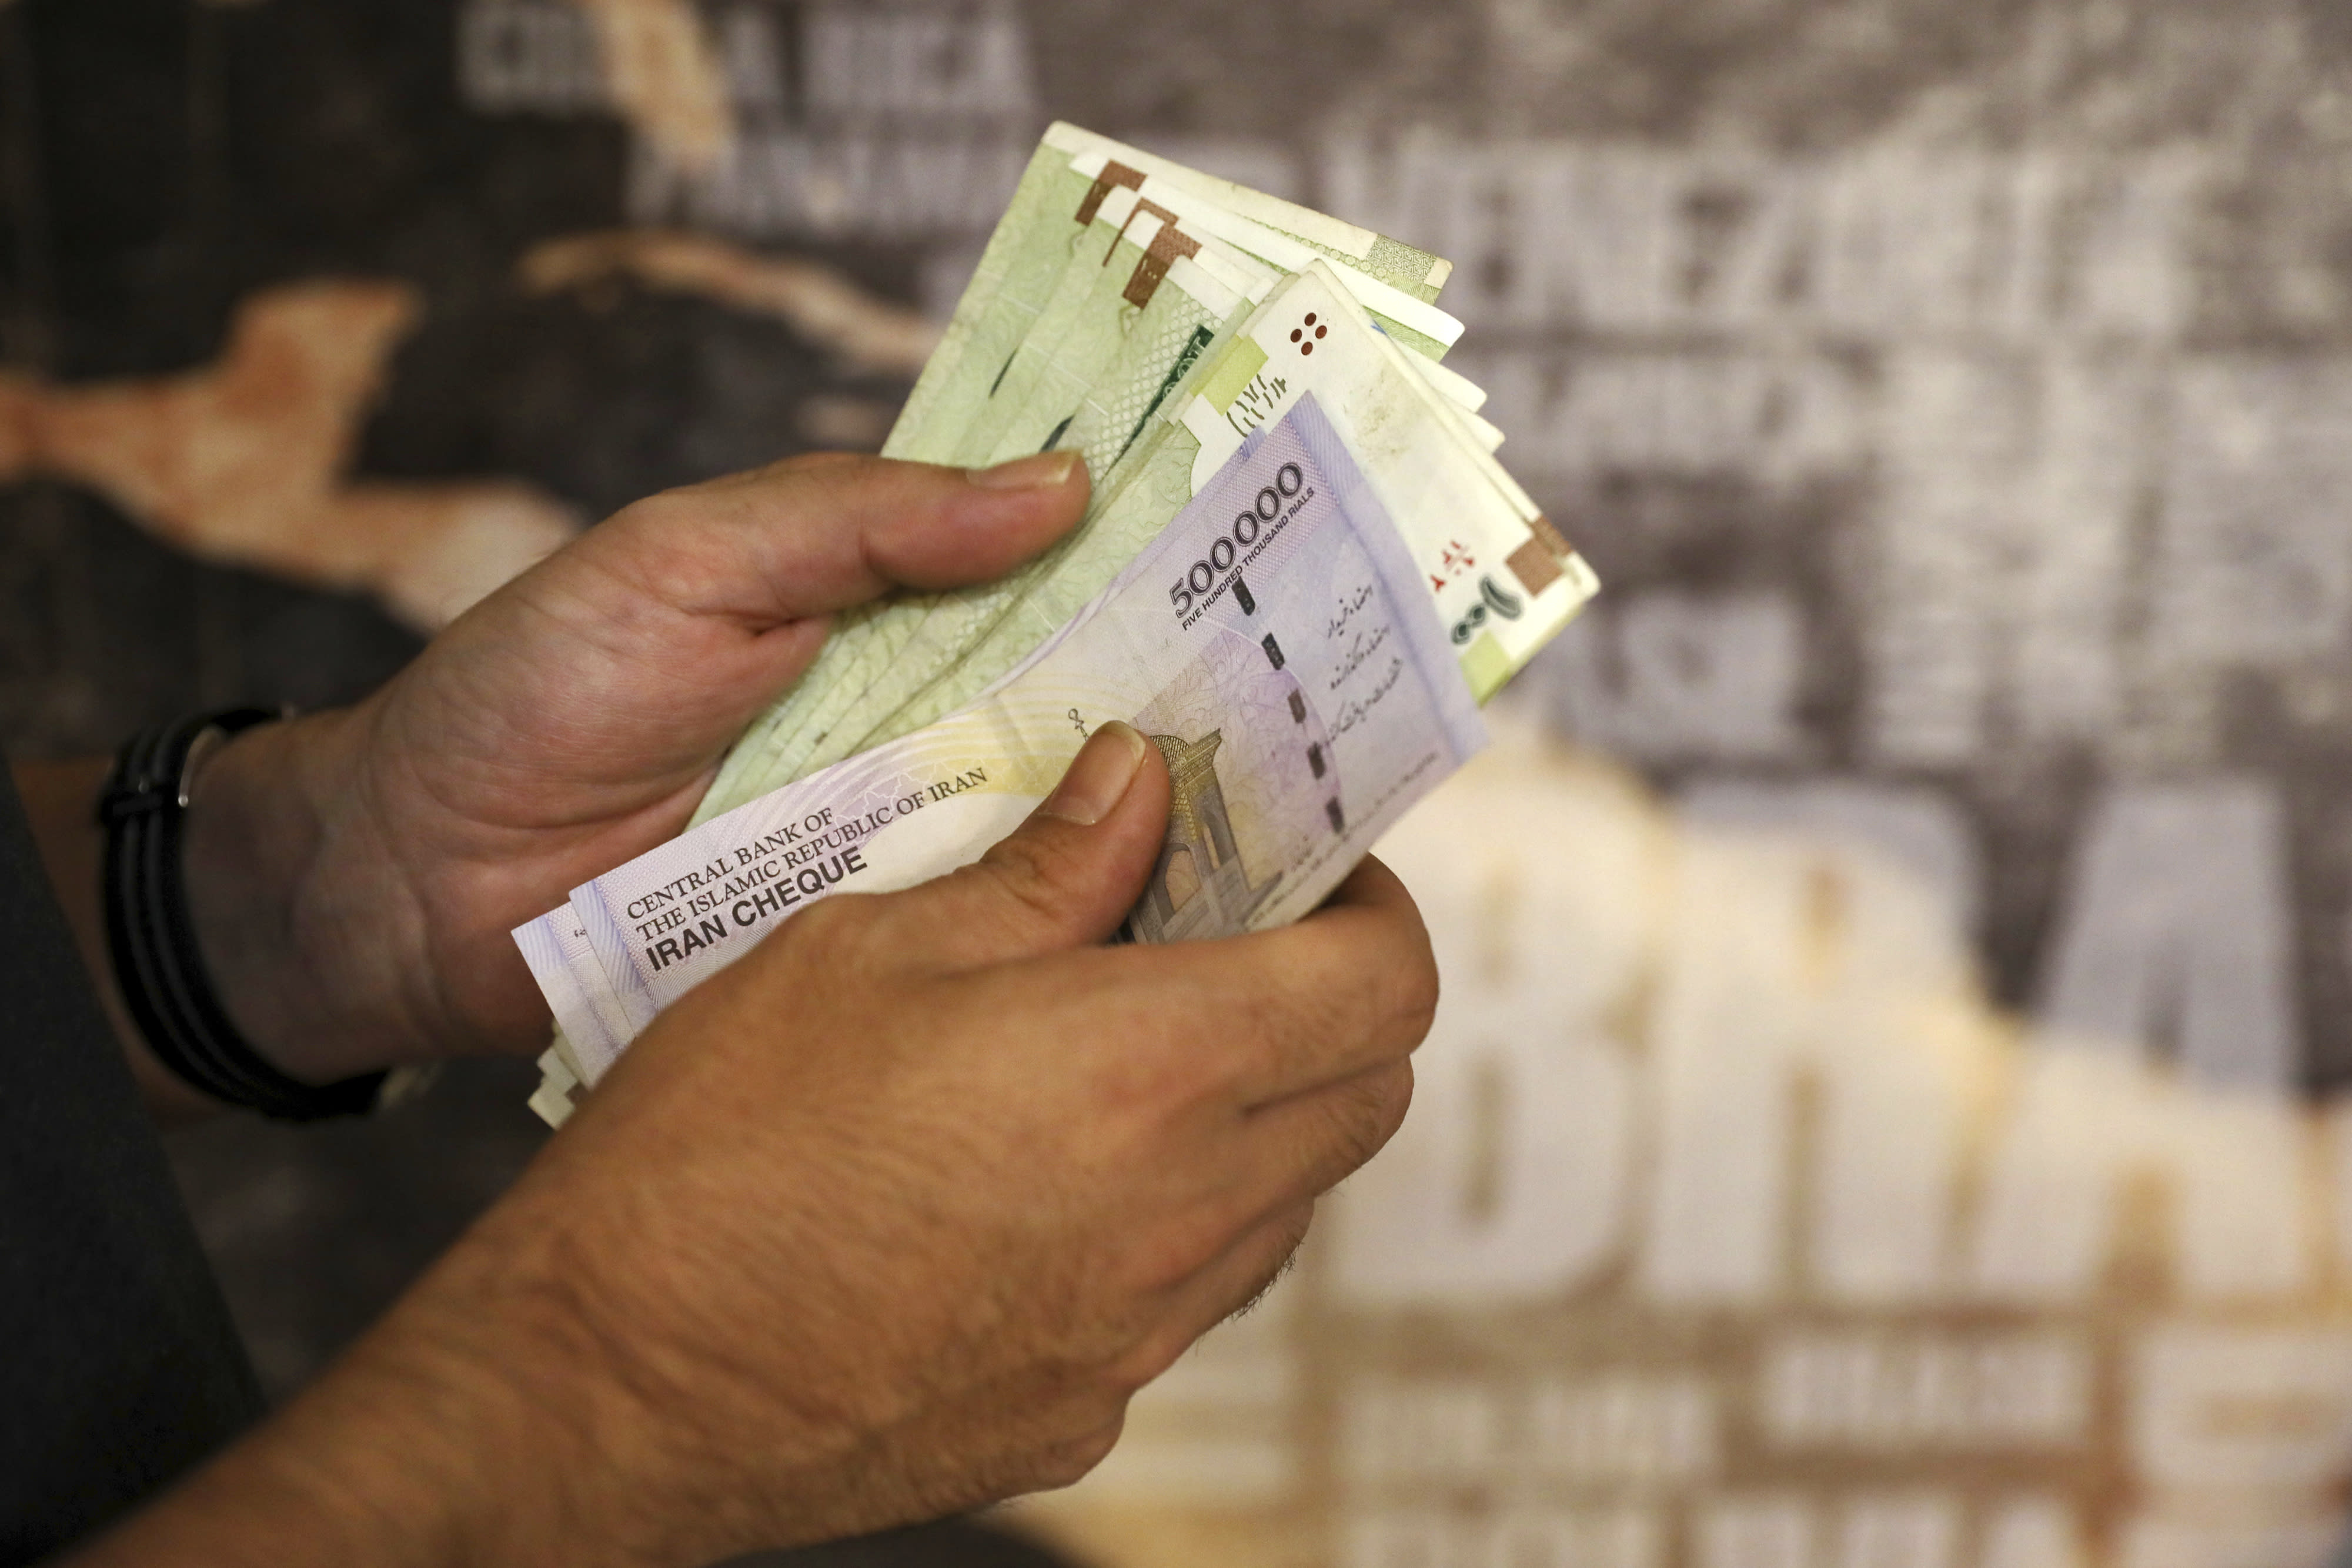 FILE - In this Aug. 21, 2019 file photo, a man counts his banknotes and traveler checks in Tehran, Iran. On Sunday, Sept 20, 2020, Iran dismissed U.S. efforts to restore all U.N. sanctions on the country as mounting economic pressure from Washington pushed the local currency down to its lowest level ever. (AP Photo/Ebrahim Noroozi, File)